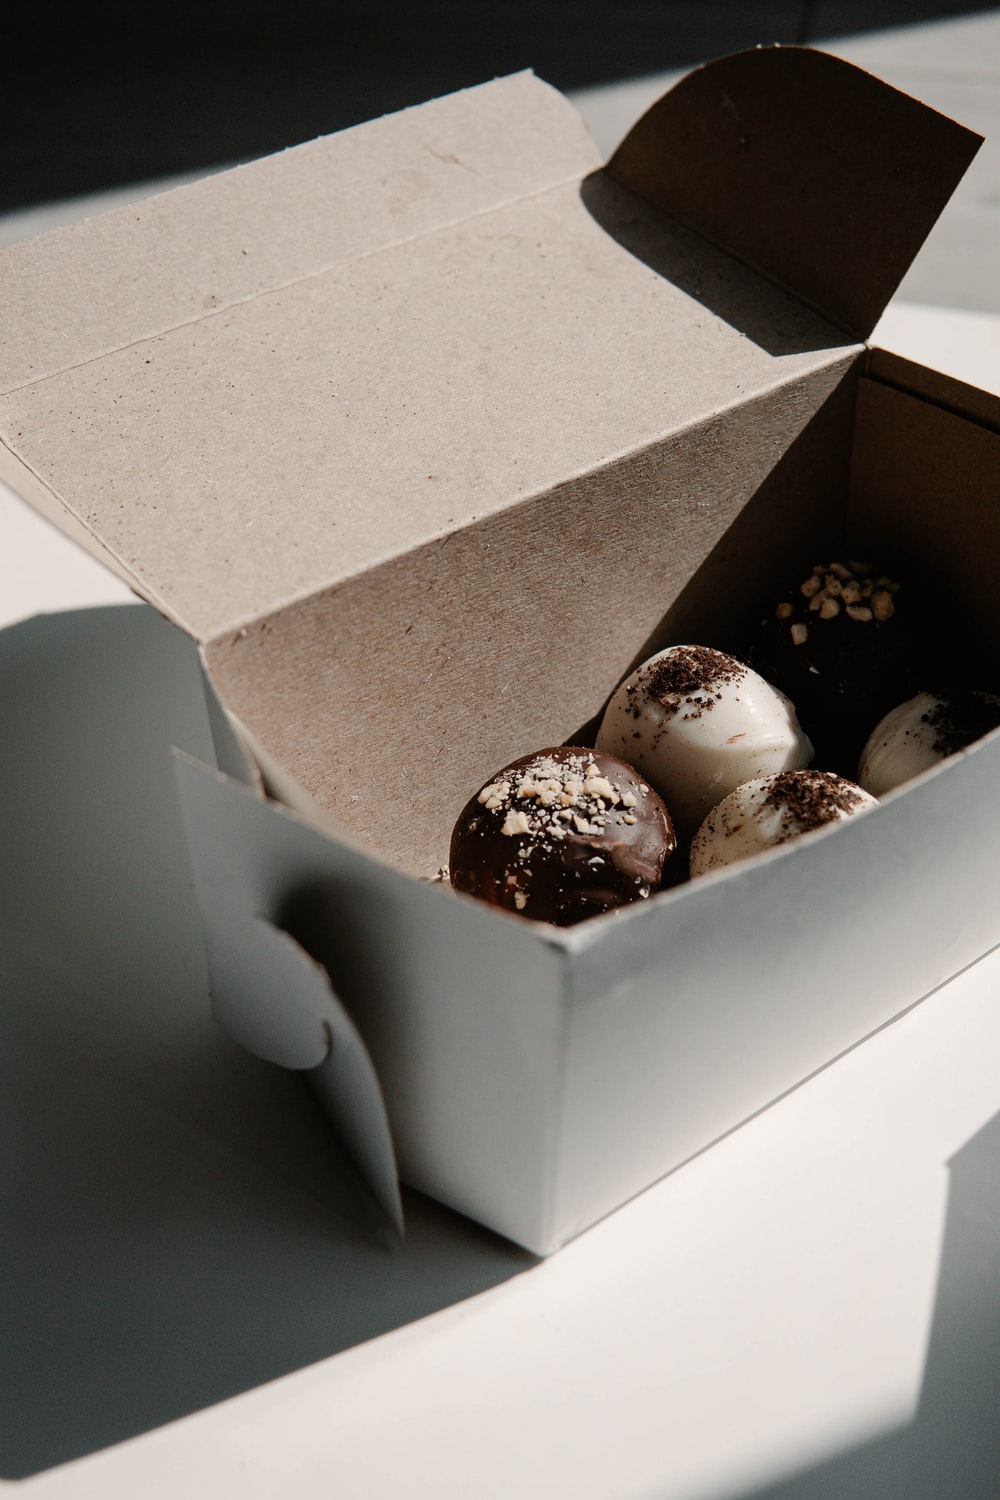 white and brown chocolate coated cookies in brown cardboard box